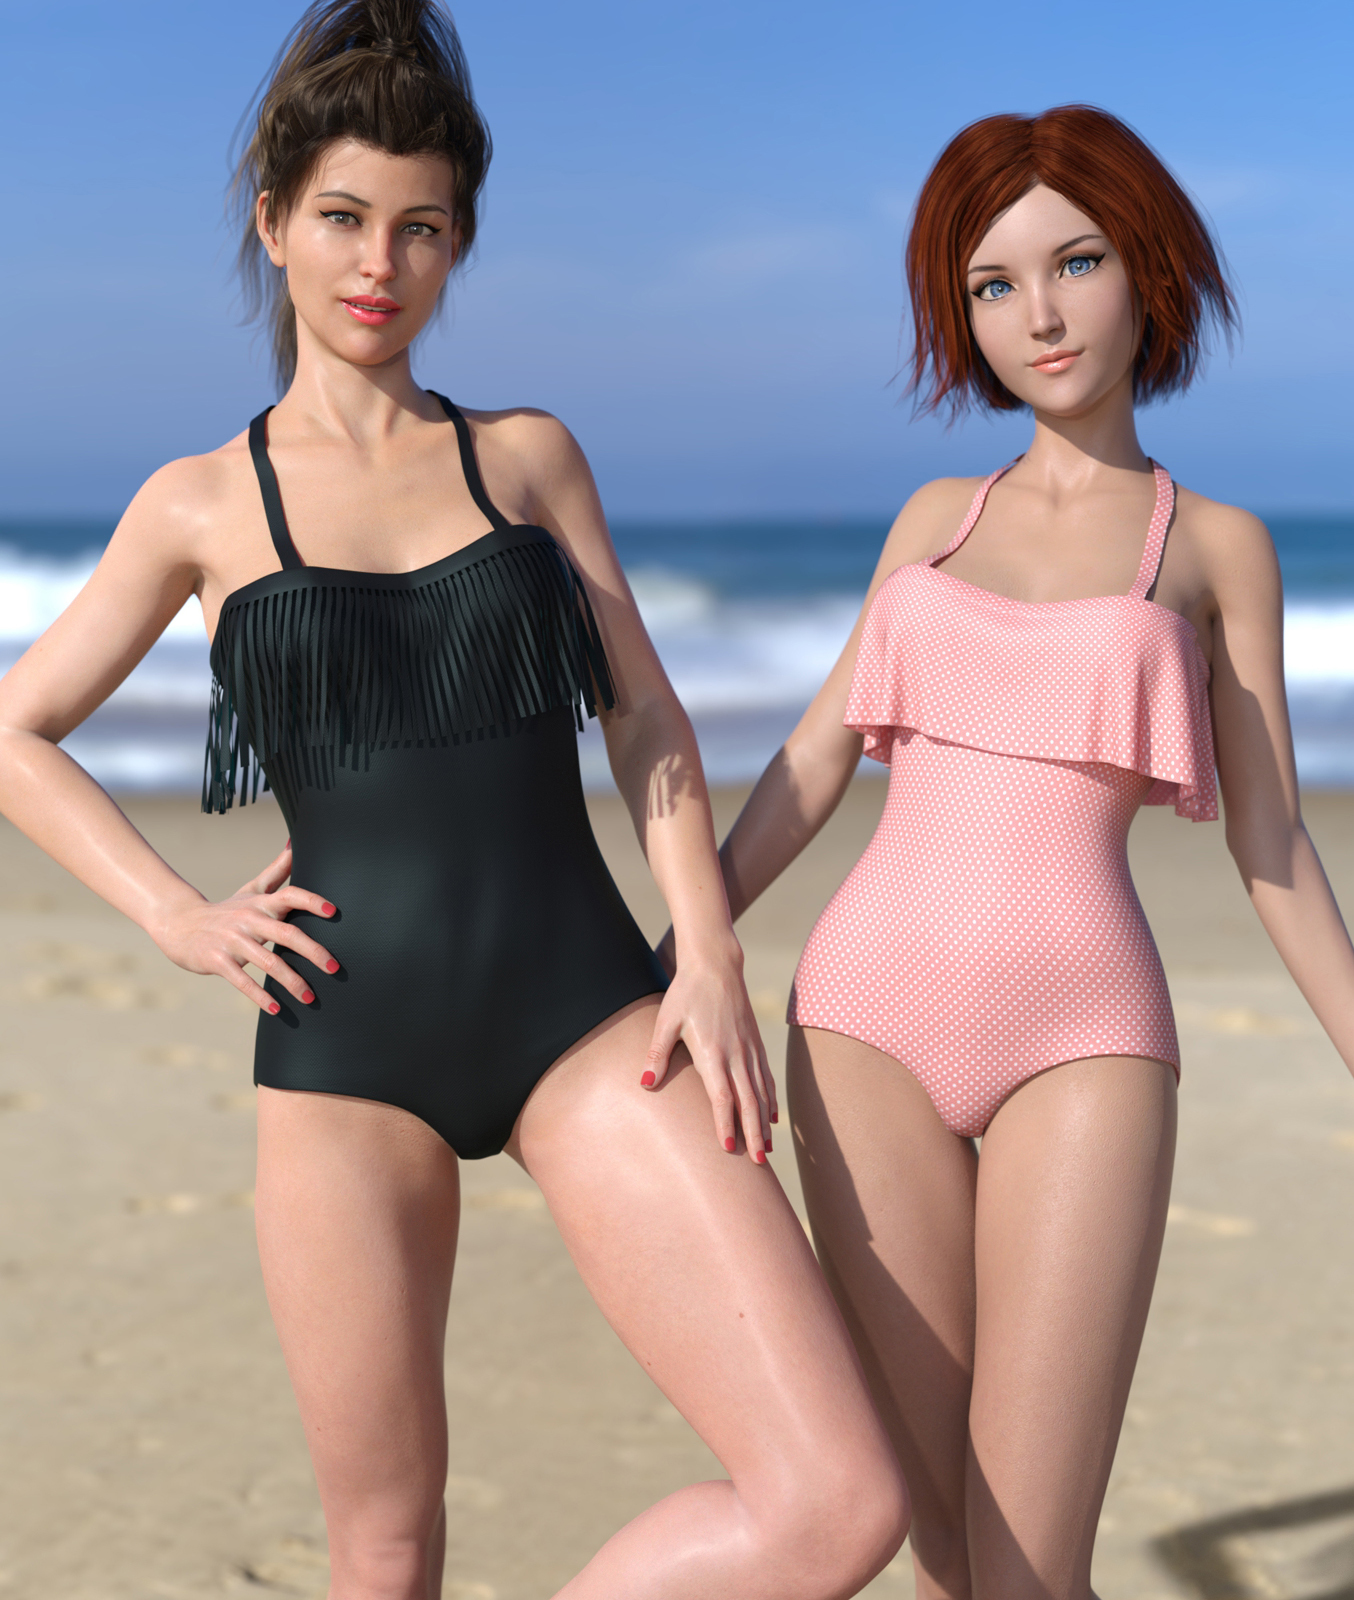 Frill n' Fringe Swimsuit for G8F by BubbleCloud